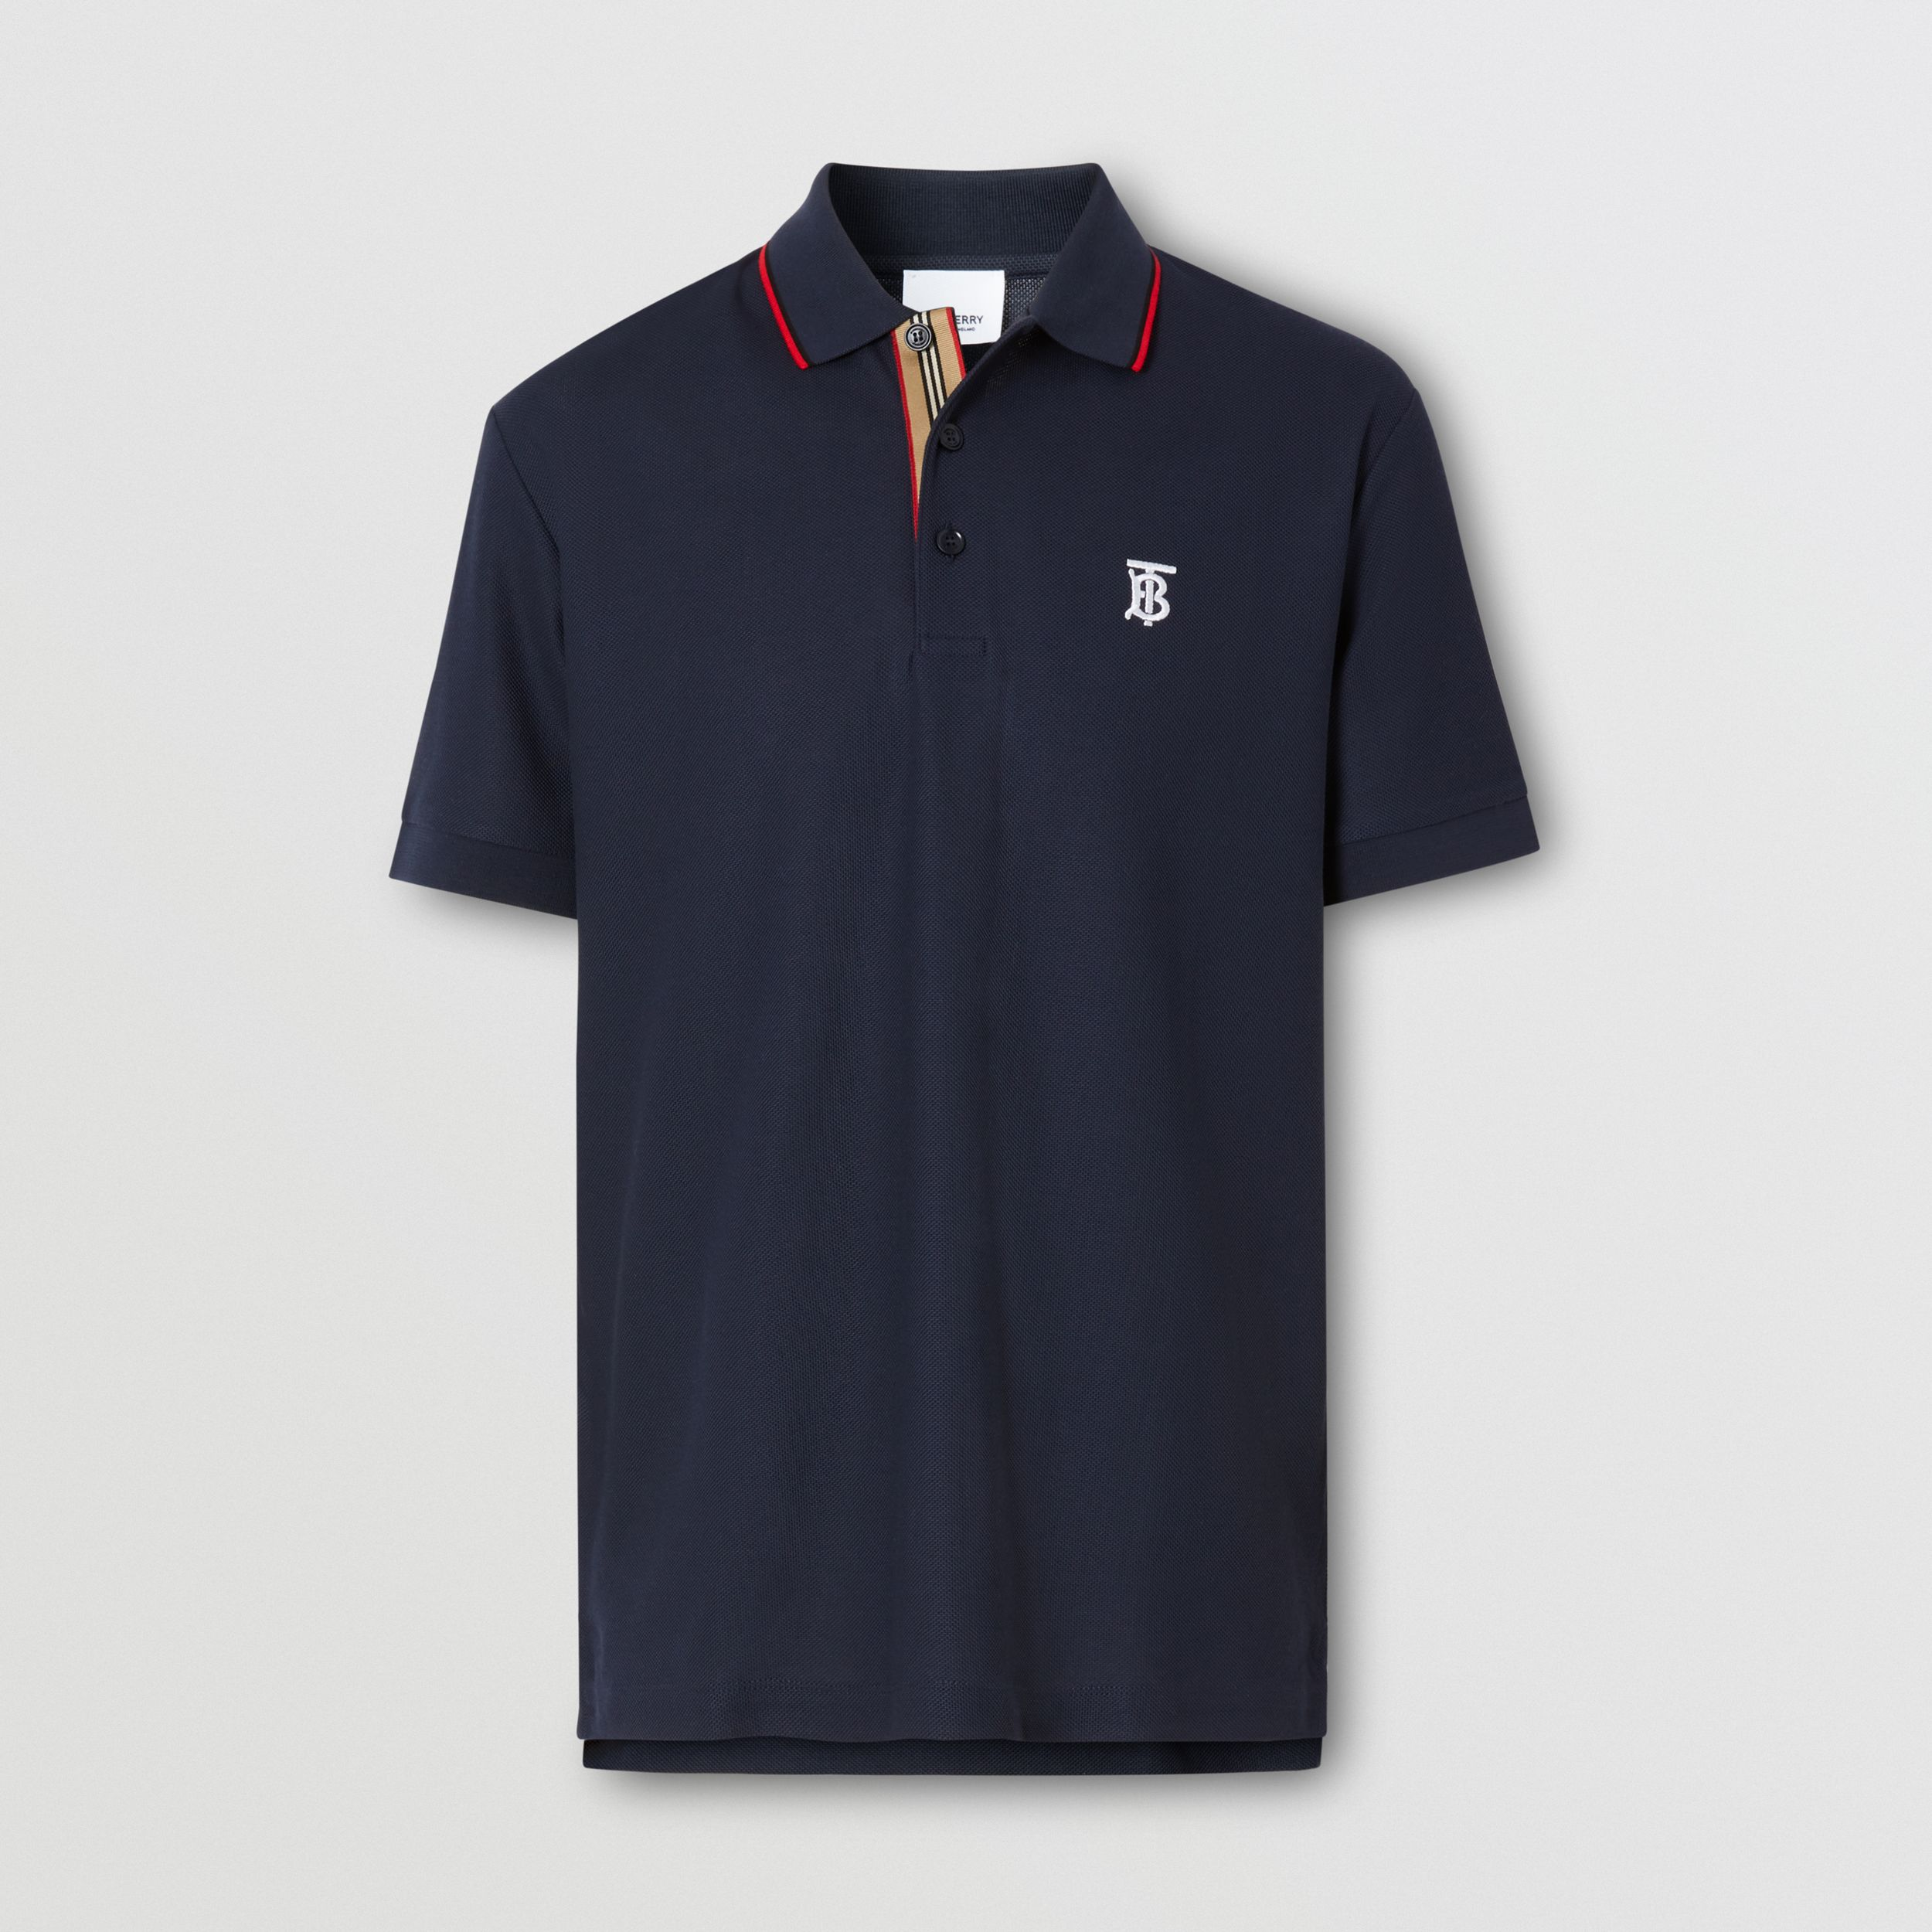 Icon Stripe Placket Cotton Piqué Polo Shirt in Navy - Men | Burberry - 4